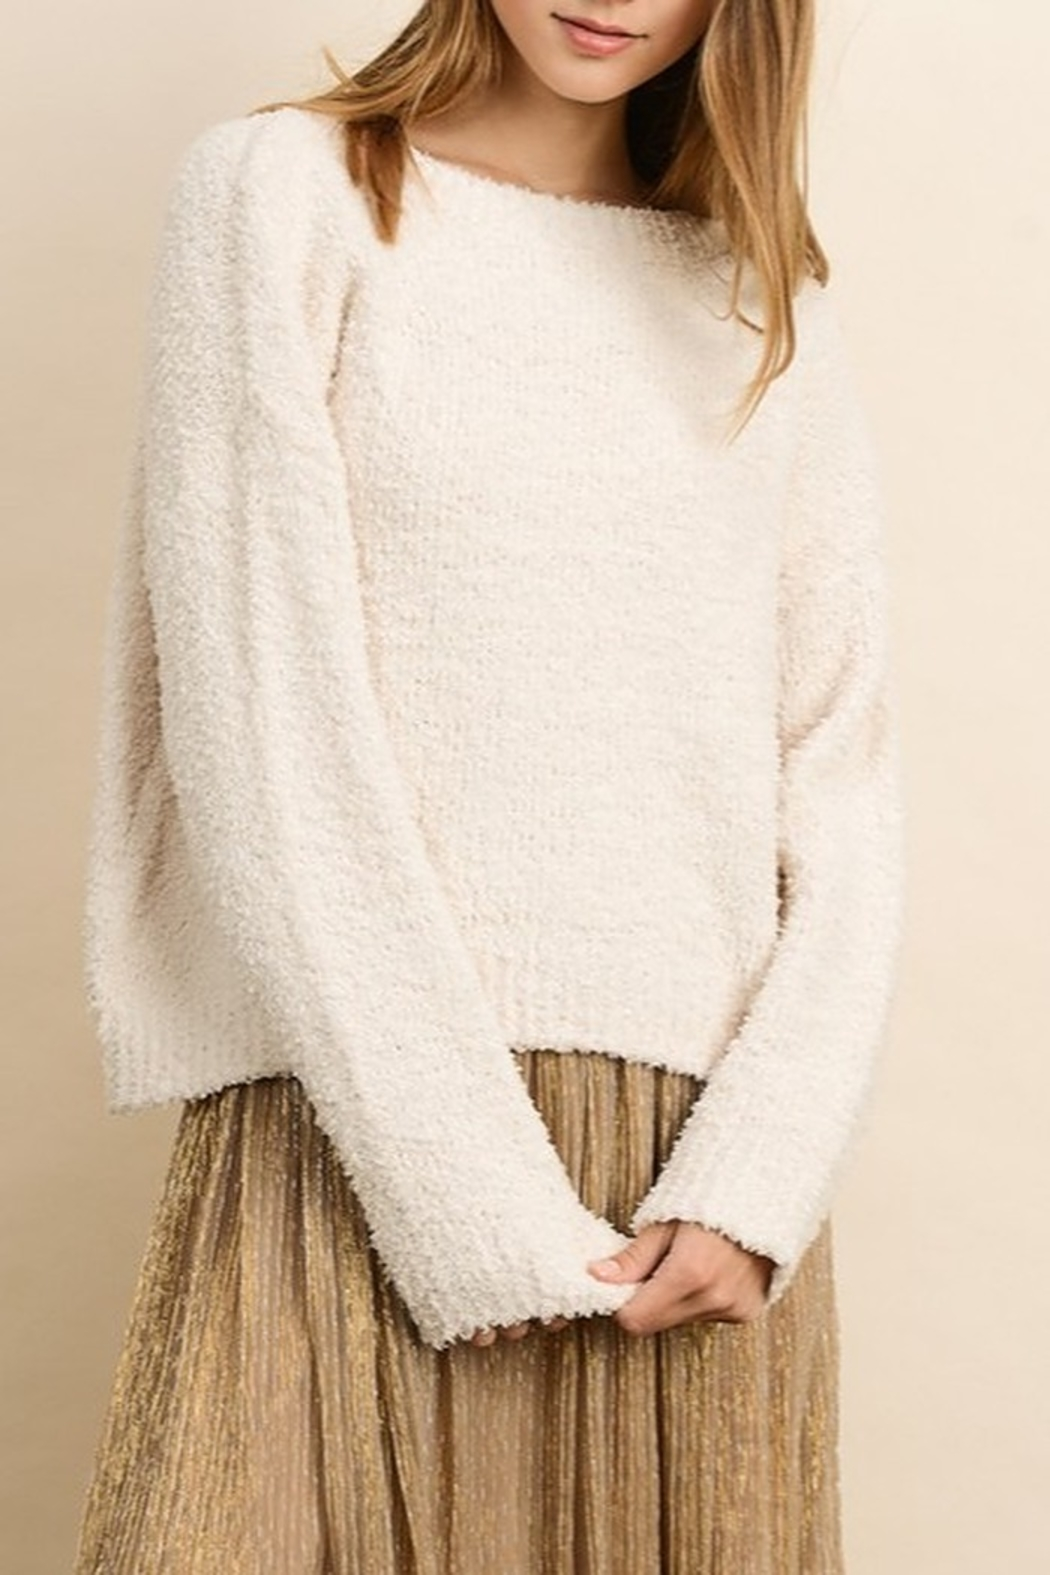 Dress Forum  Cozy Pullover Sweater - Main Image